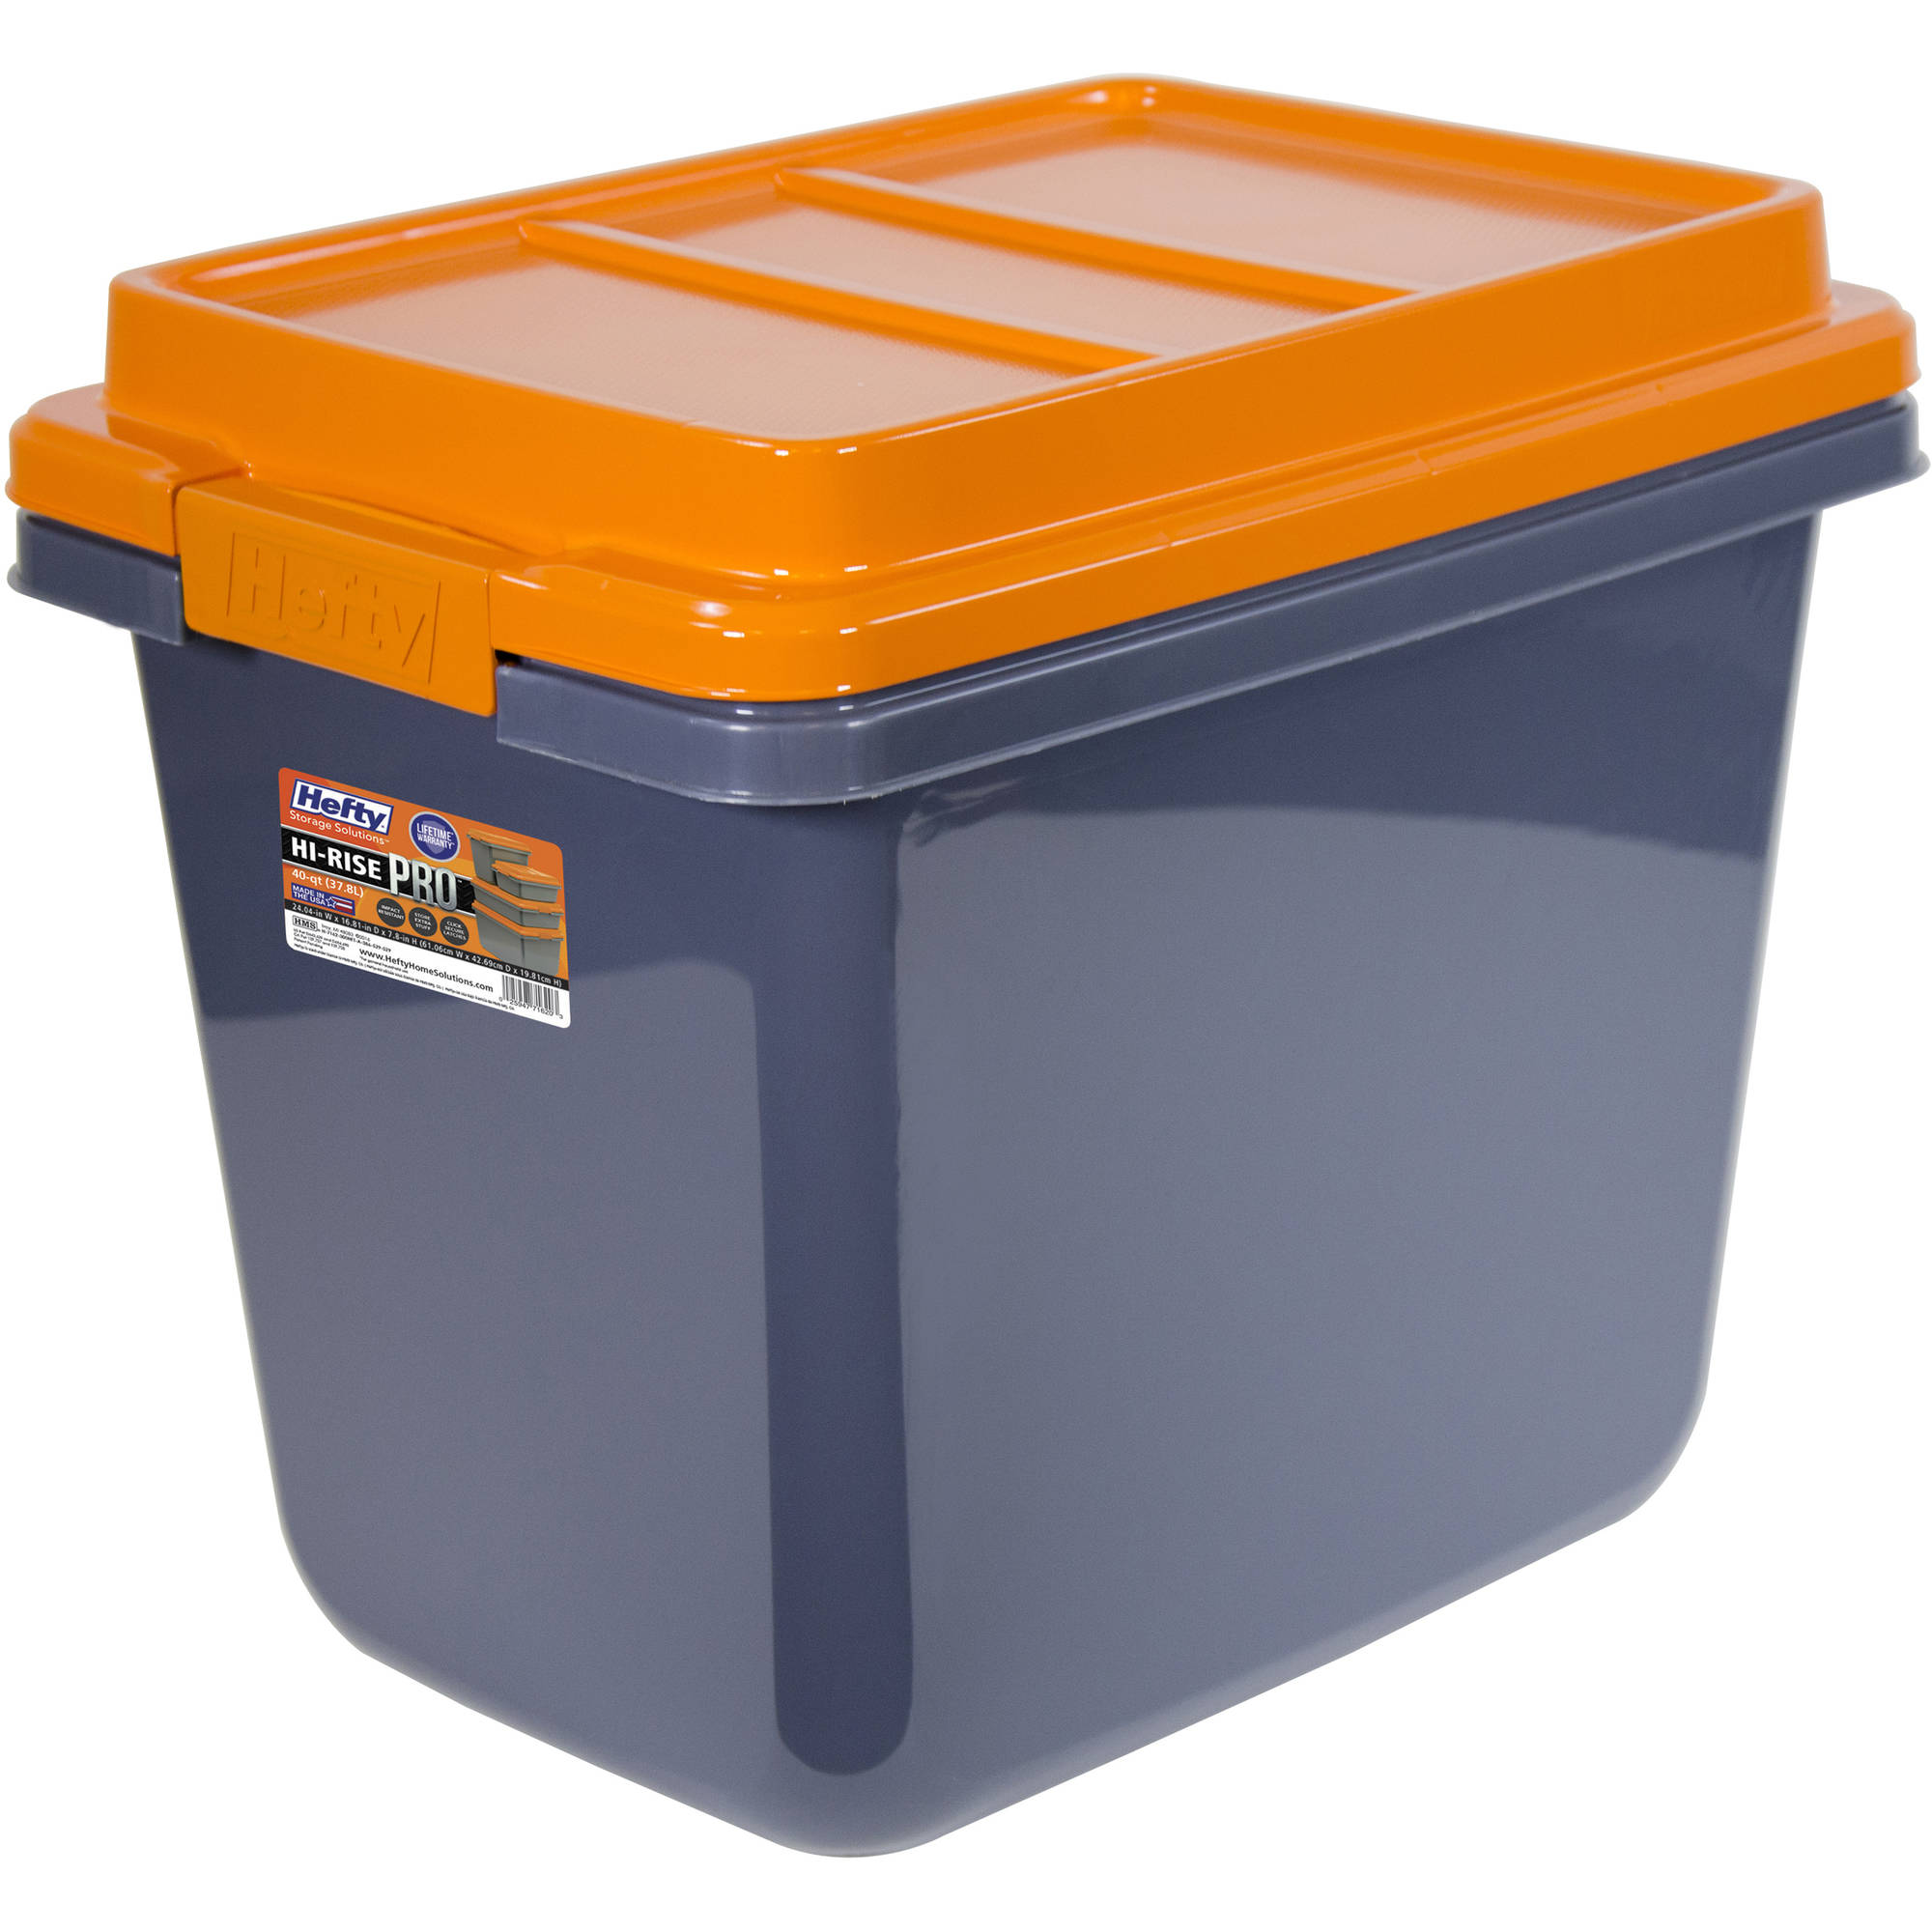 Hefty HI-RISE Heavy Duty Storage Bins, 32 Qt. Latch Storage Box, Orange/Gray